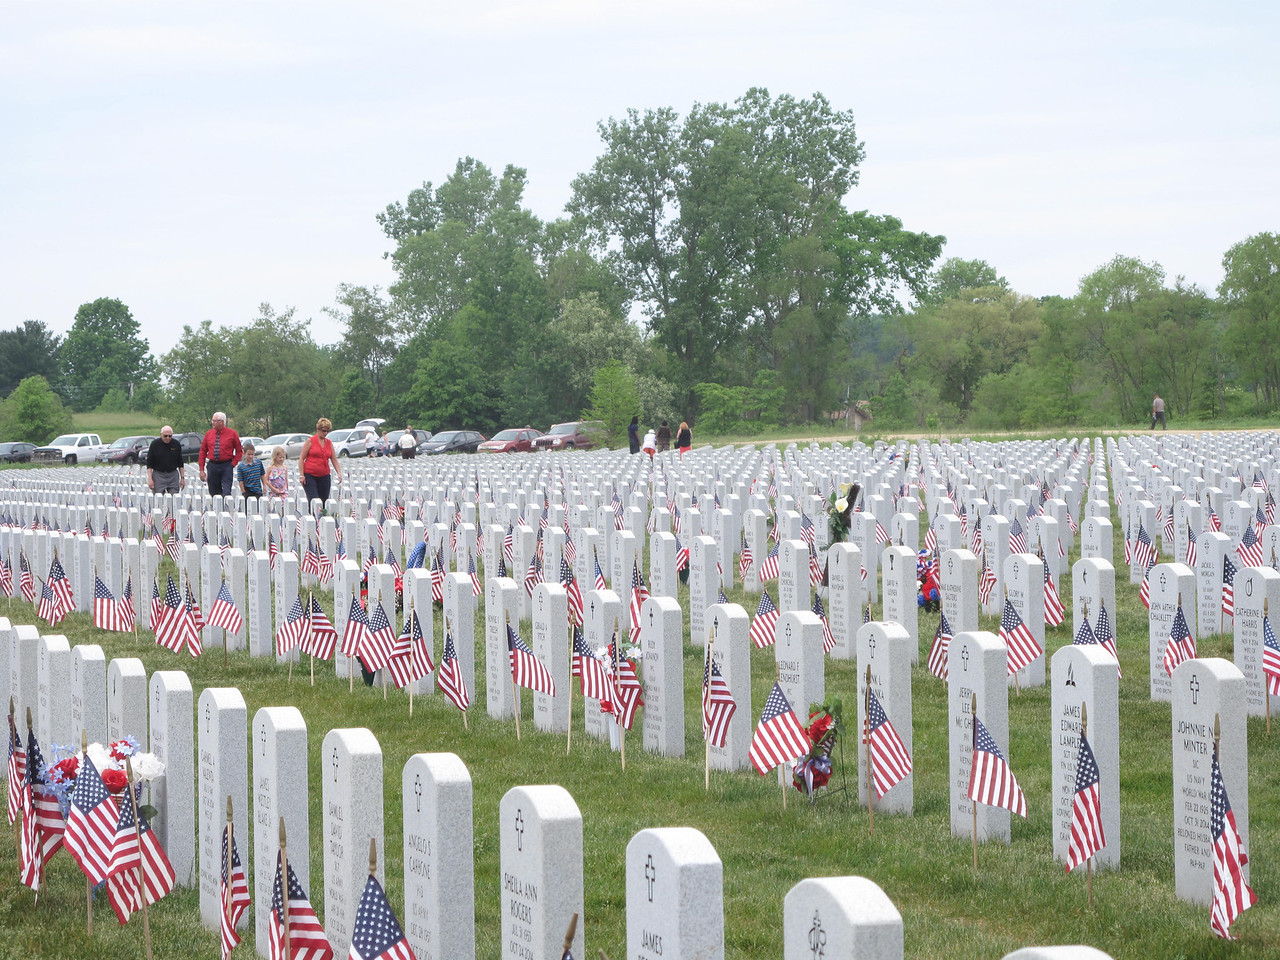 ELIZABETH DOBBINS / GAZETTE Families wander the graves at Ohio Western Reserve National Cemetery in Rittman Sunday afternoon.